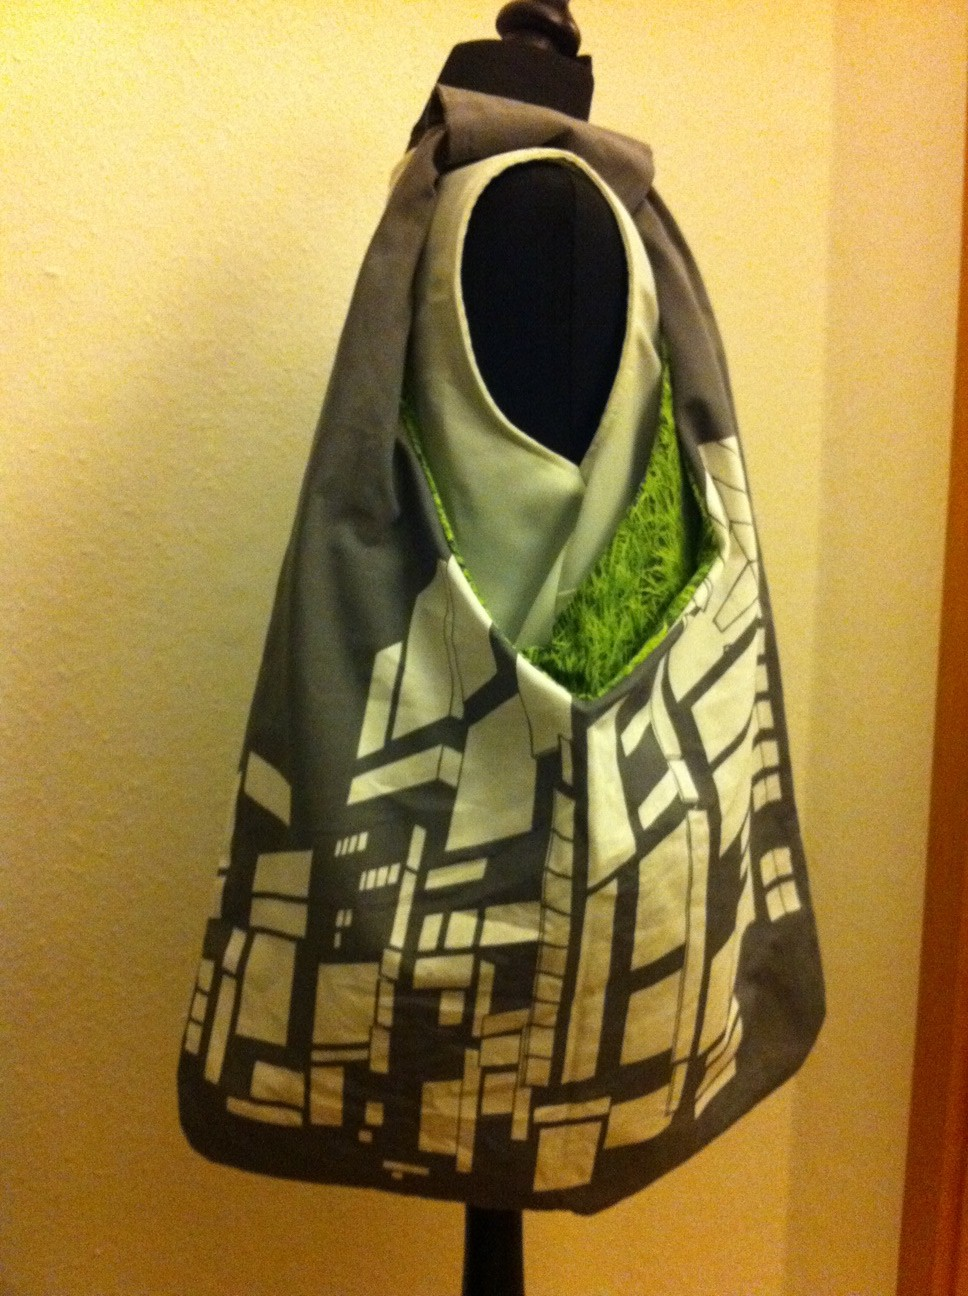 Sling Bag Pattern Free Download : NYC Bag + green gras - reversible sling bag - Sewing Projects ...